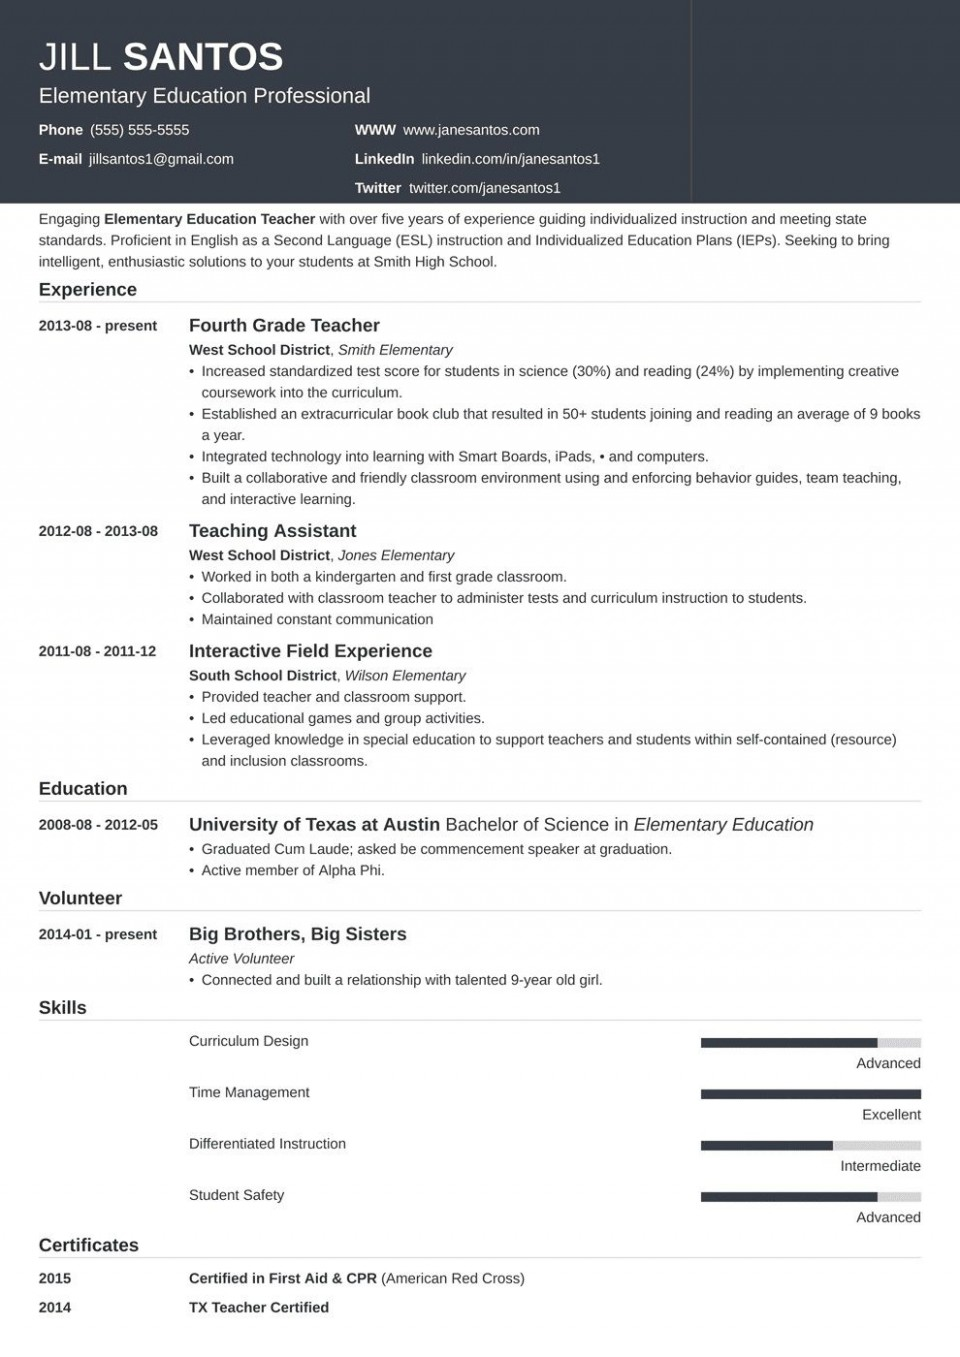 004 Archaicawful Resume Template For Teacher Highest Clarity  Free Download Australia Microsoft Word 2007960